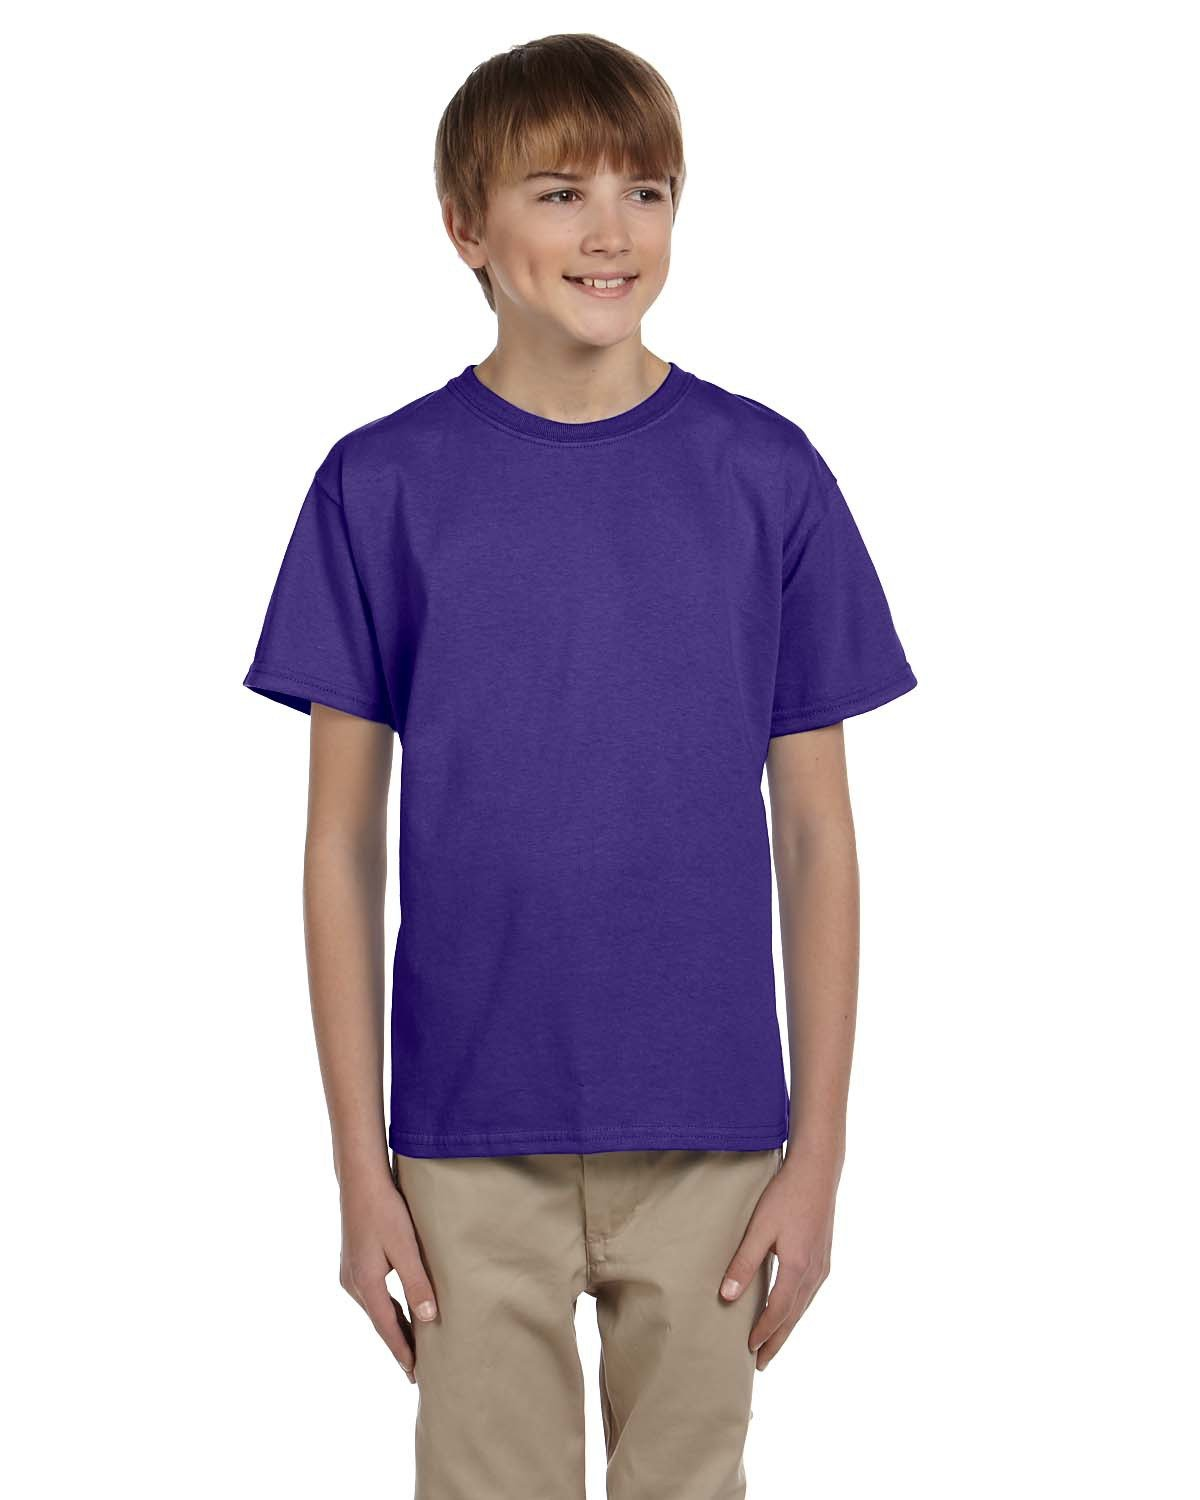 Fruit of the Loom Youth HD Cotton™ T-Shirt PURPLE